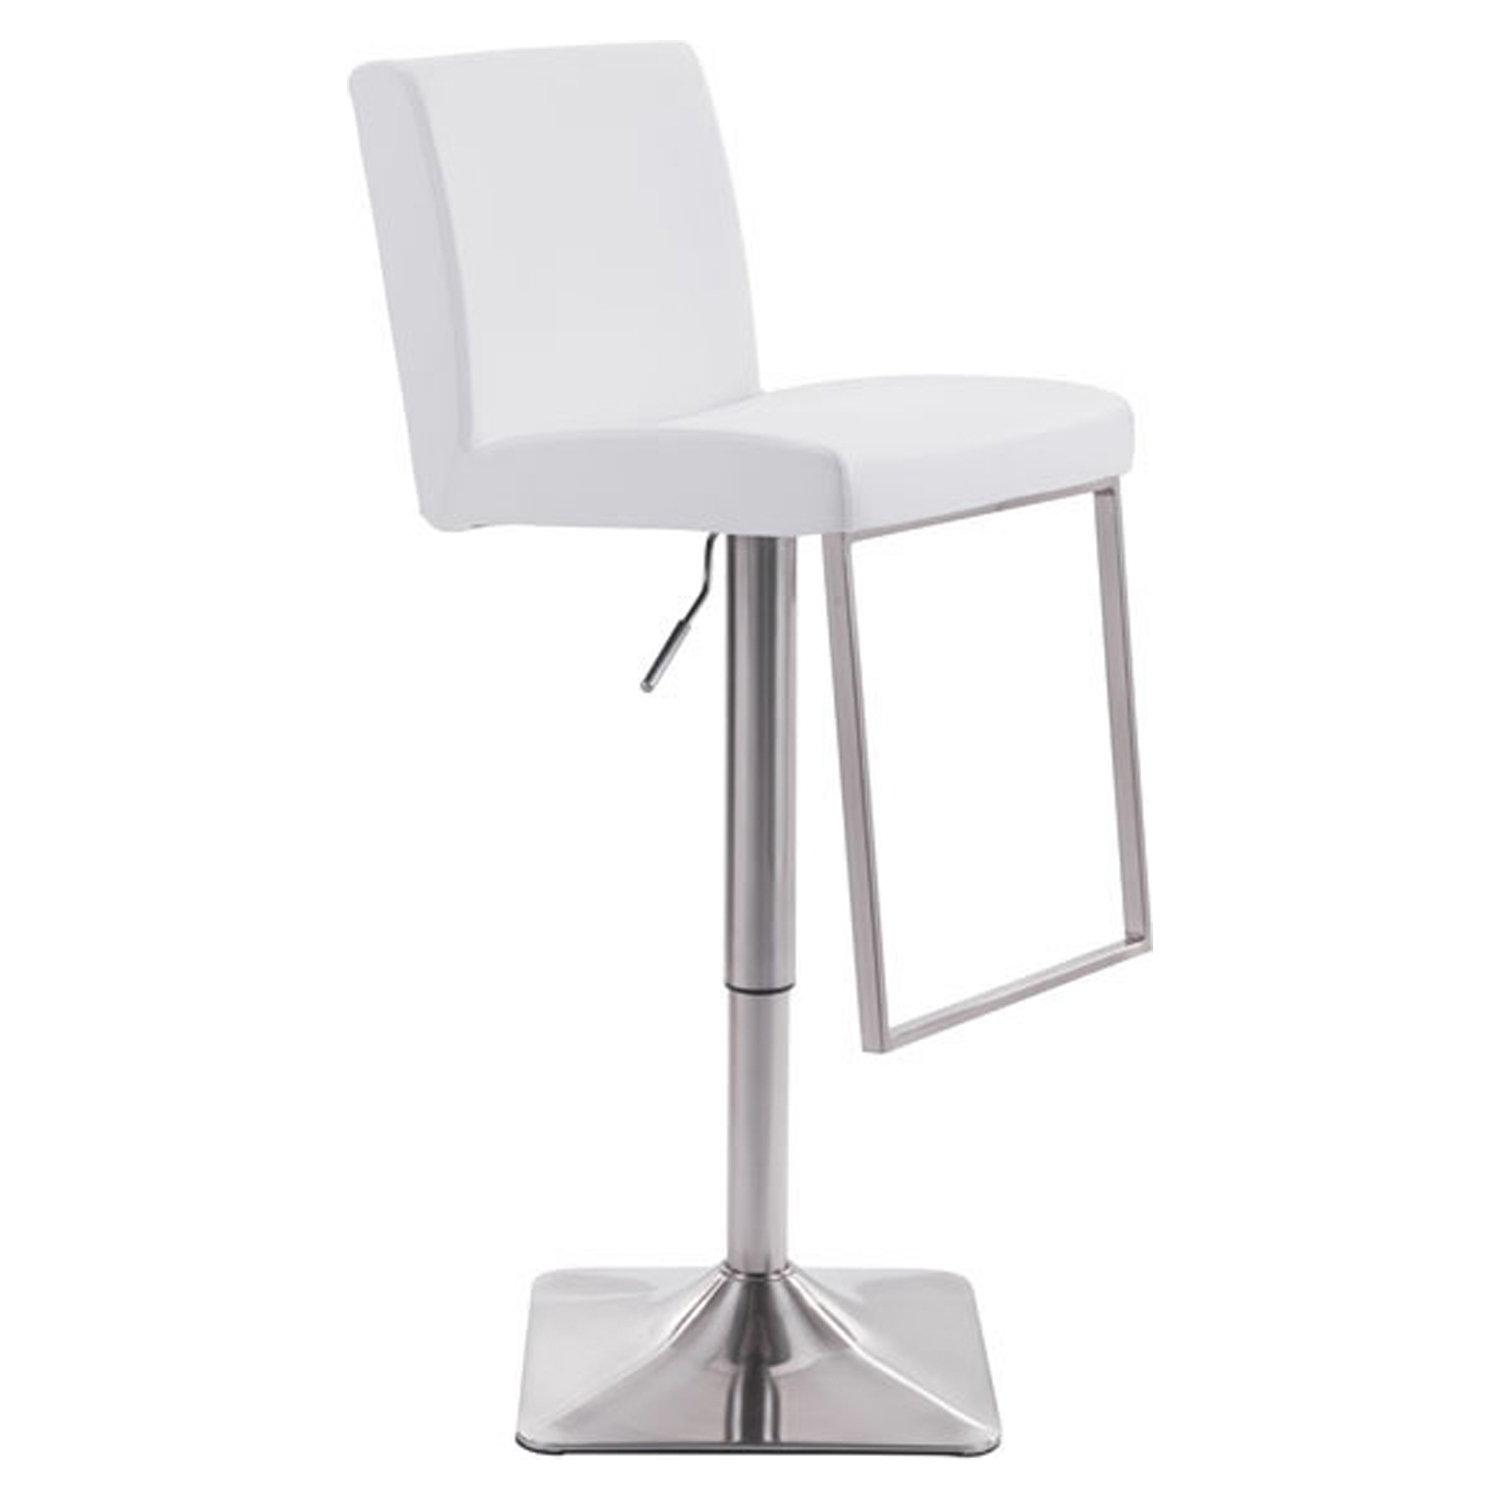 Puma Bar Chair - Adjustable, White - ZM-100311